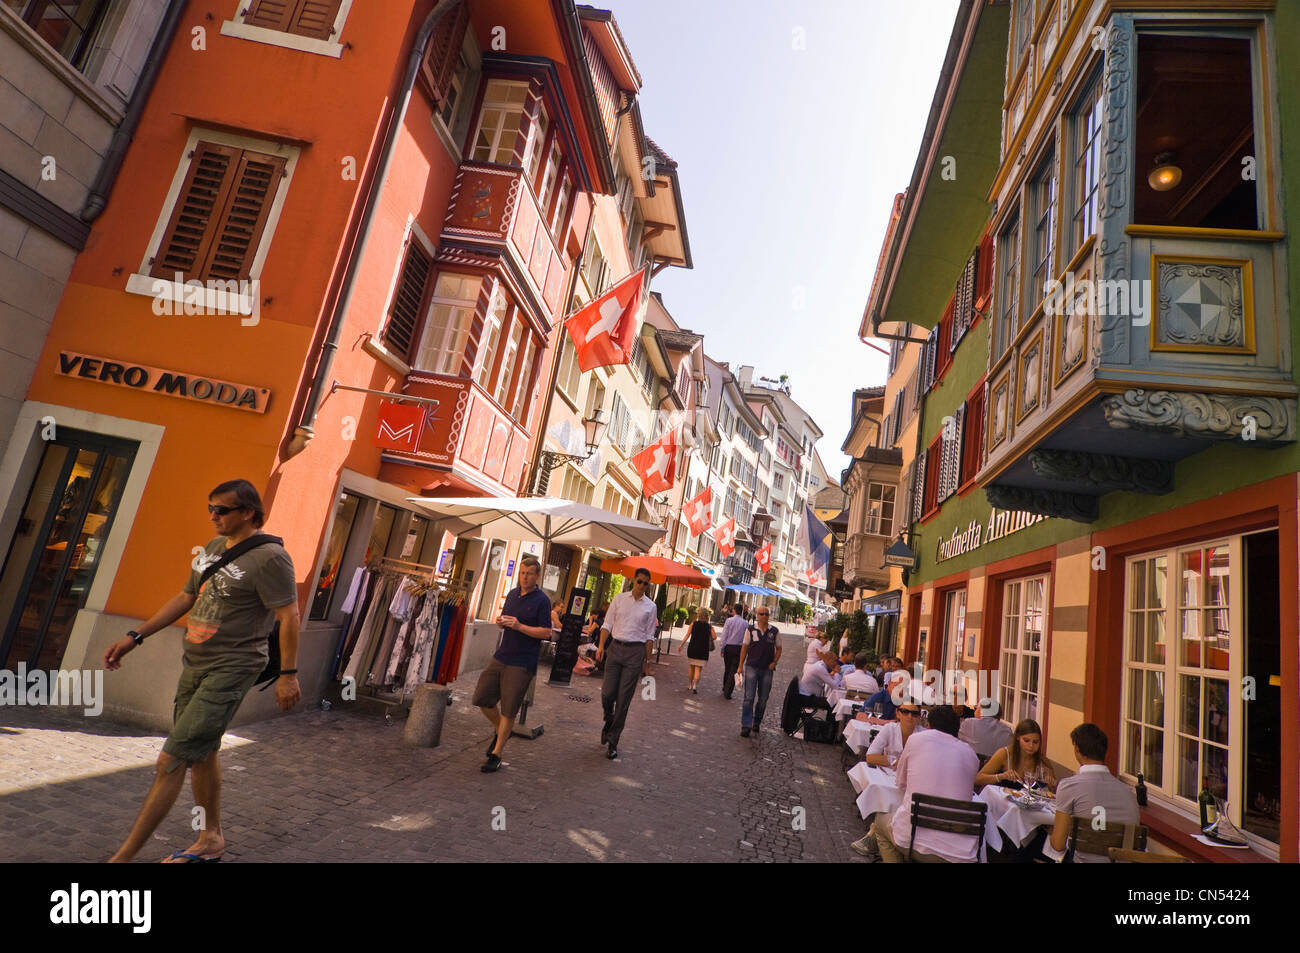 d02479527230c Horizontal wide angle cityscape of Augustinergasse, a popular  pedestrianised street in Lindenhof in Zurich on